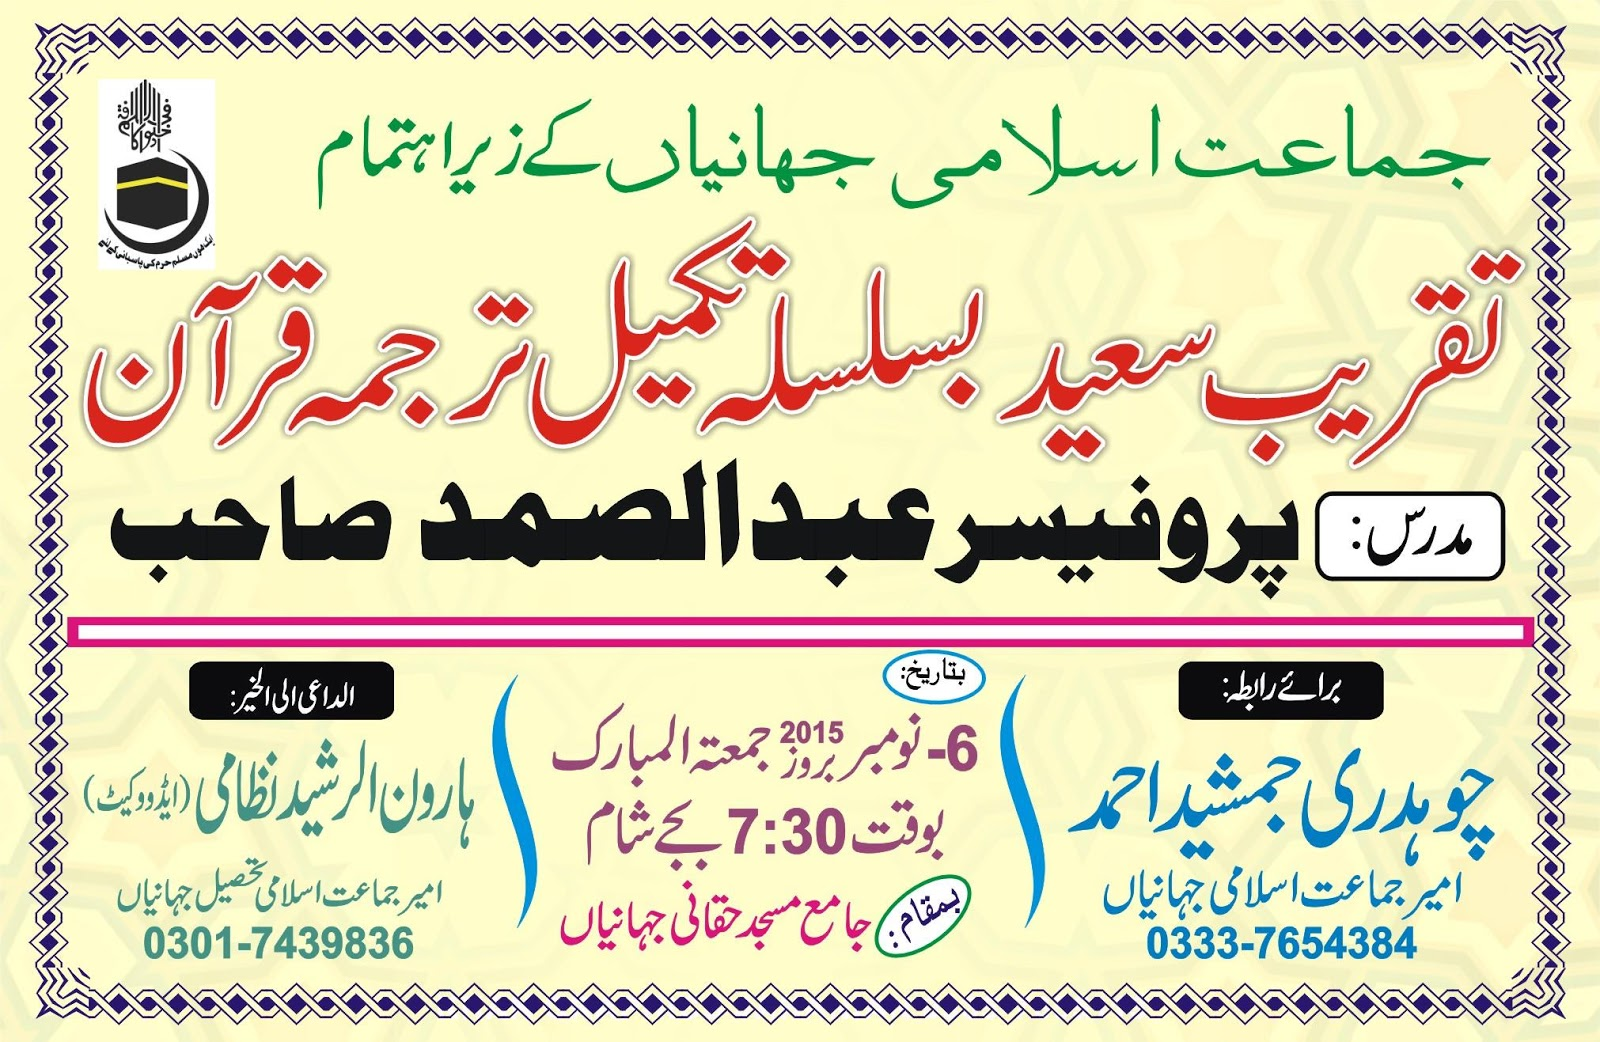 Khan Graphics Visiting Cards Pena Flex Urdu English